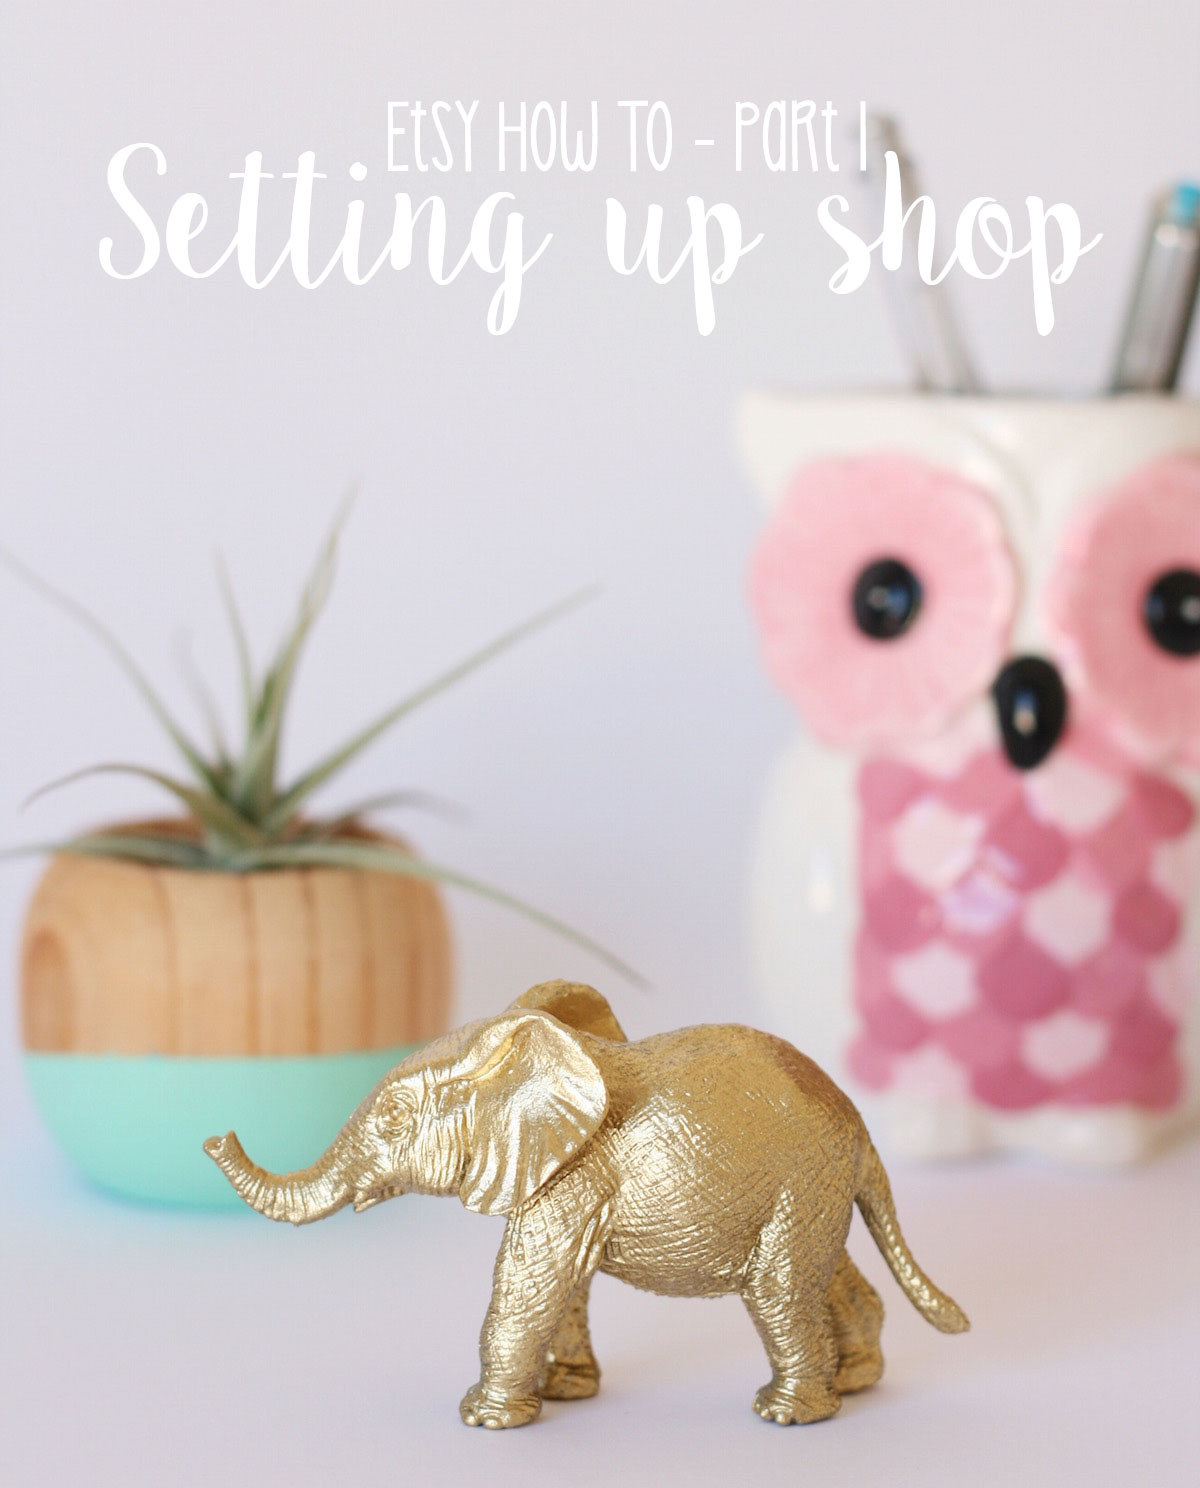 Opening an Etsy shop and listing your first items // Etsy How To Part 1